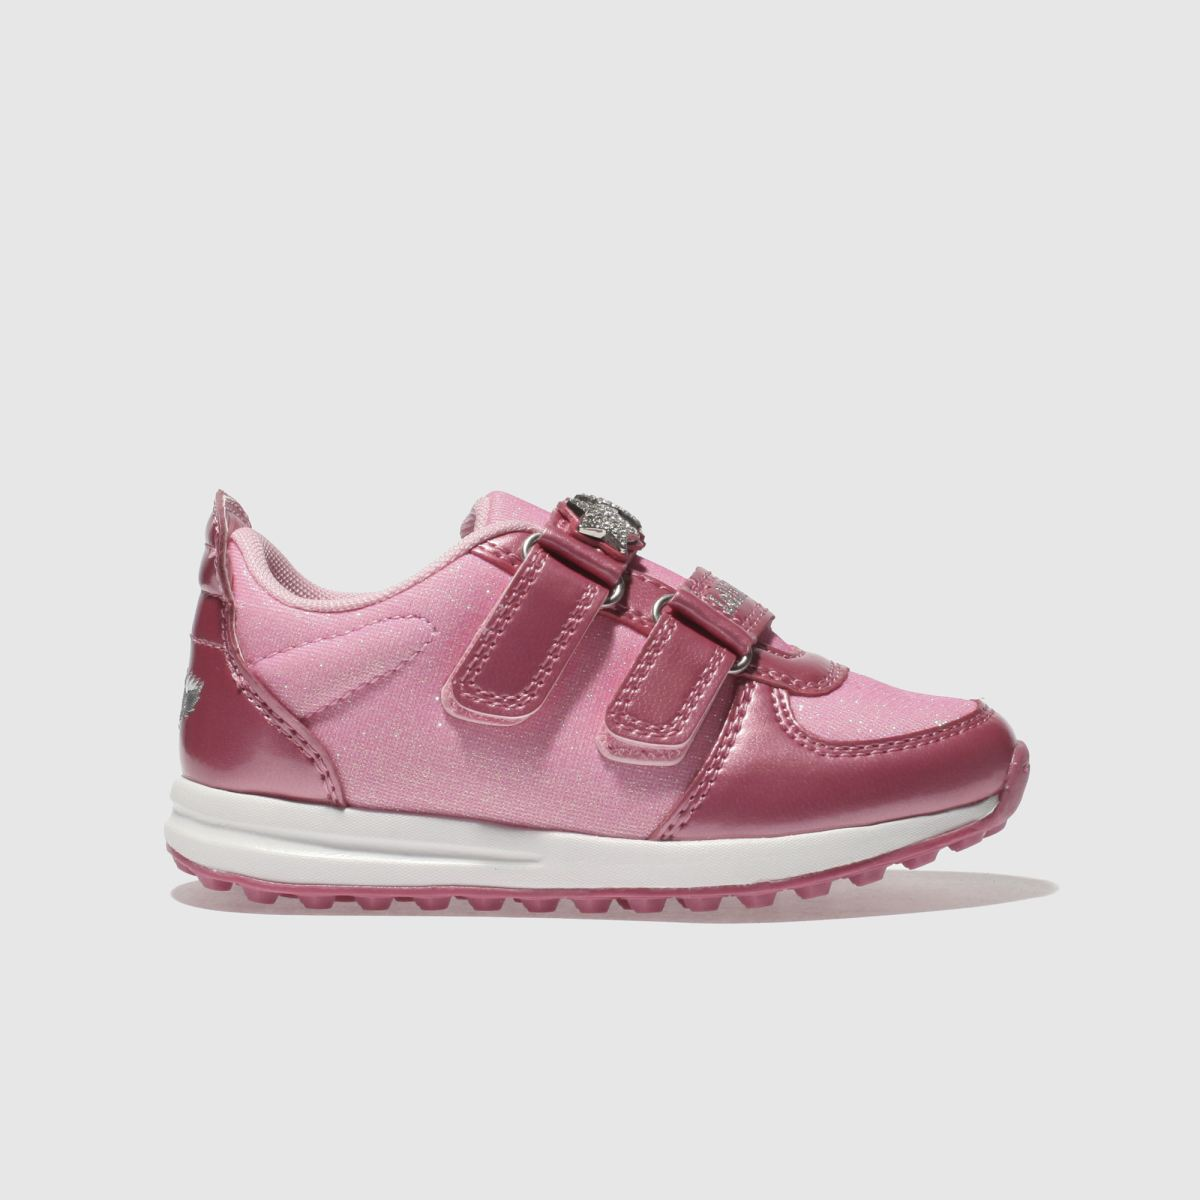 Lelli Kelly Lelli Kelly  Pink Colourissima Girls Toddler Trainers